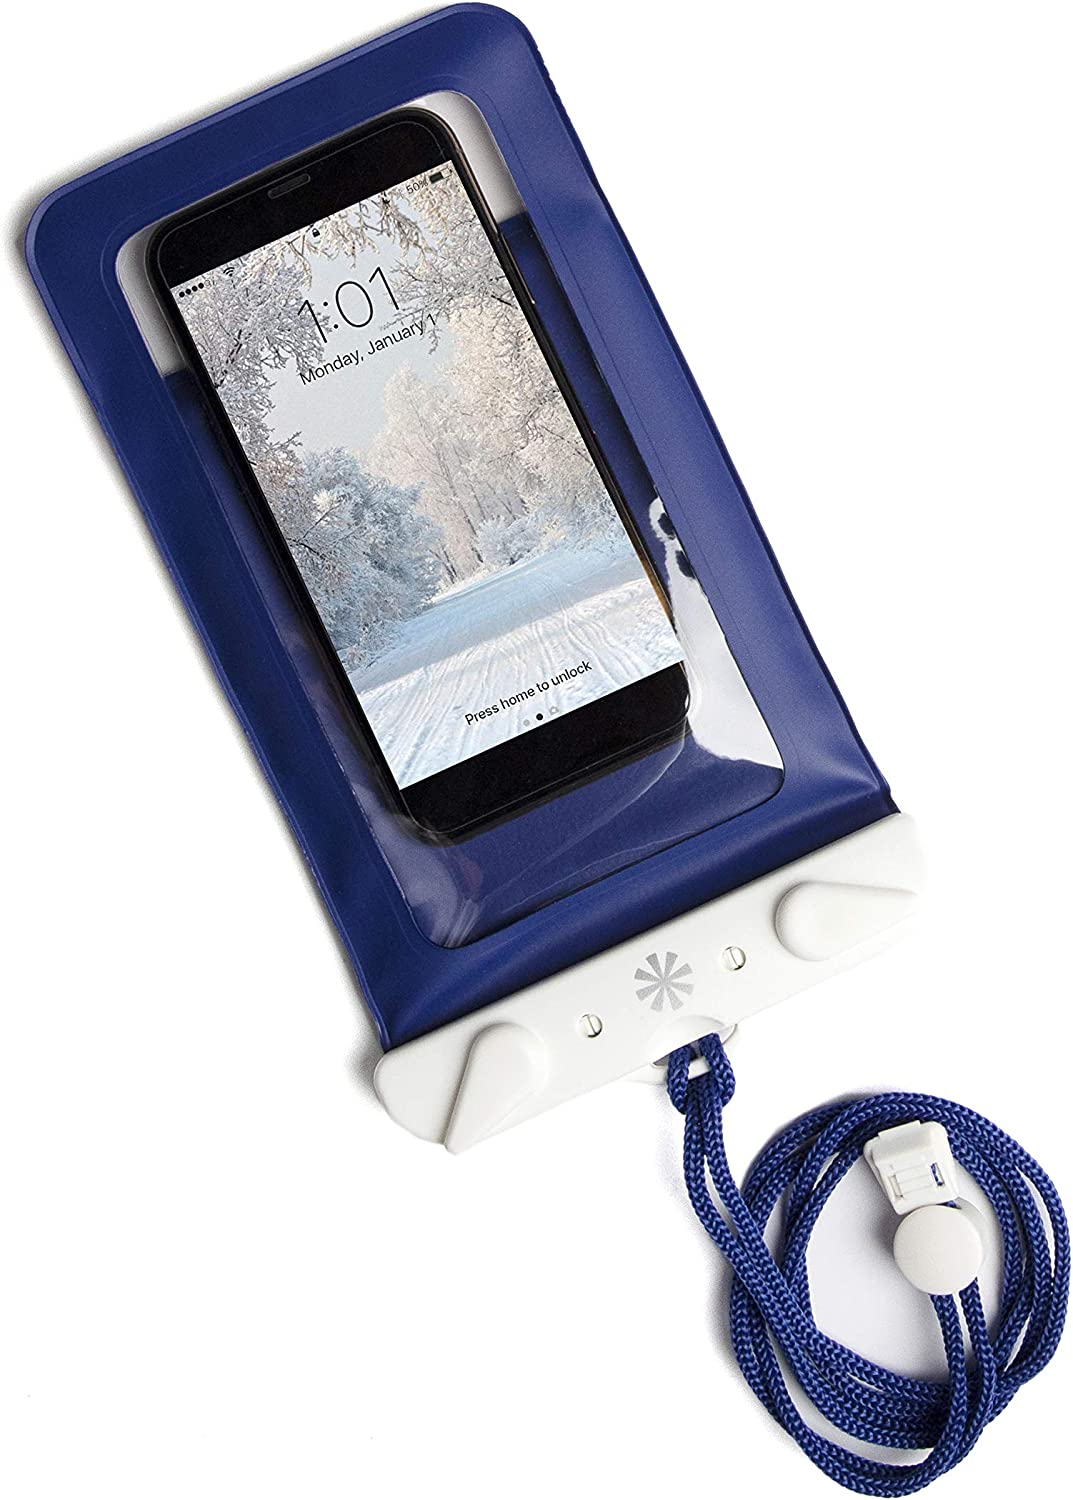 Tech Candy Dry Spell Water Defender Bag for iPhone & Android Floats Adjustable Lanyard Protection Text Thru Window Waterproof Snowproof Universal Pouch Beach Lake Ocean Pool2019 Edition Navy Blue